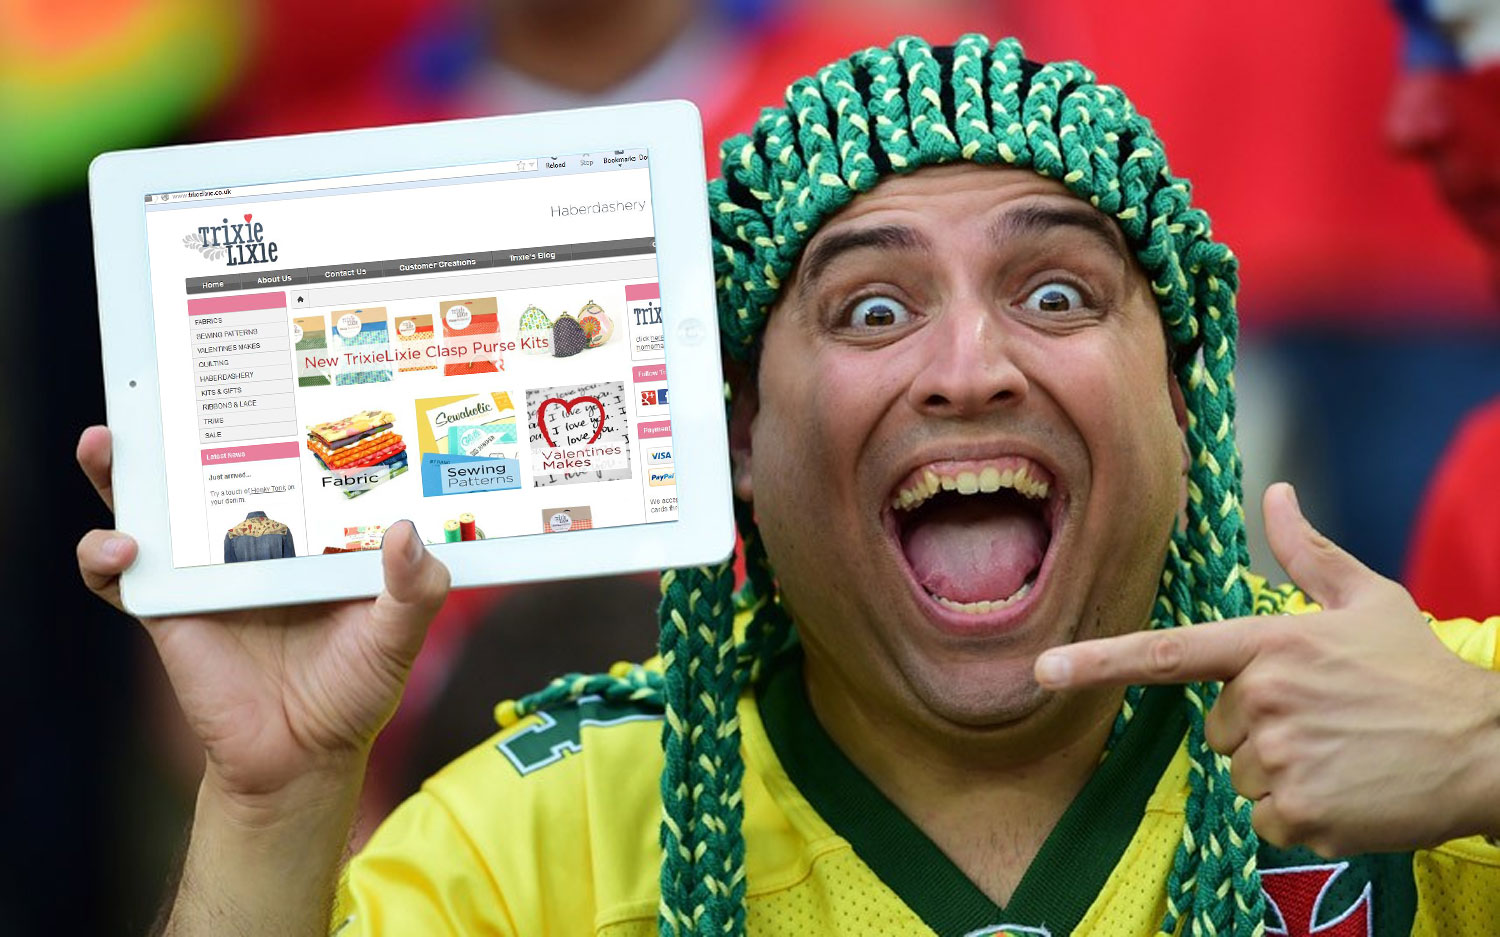 World cup fan is over the moon after buying a Sewaholic sewing pattern from TrixieLixie on his iPad.